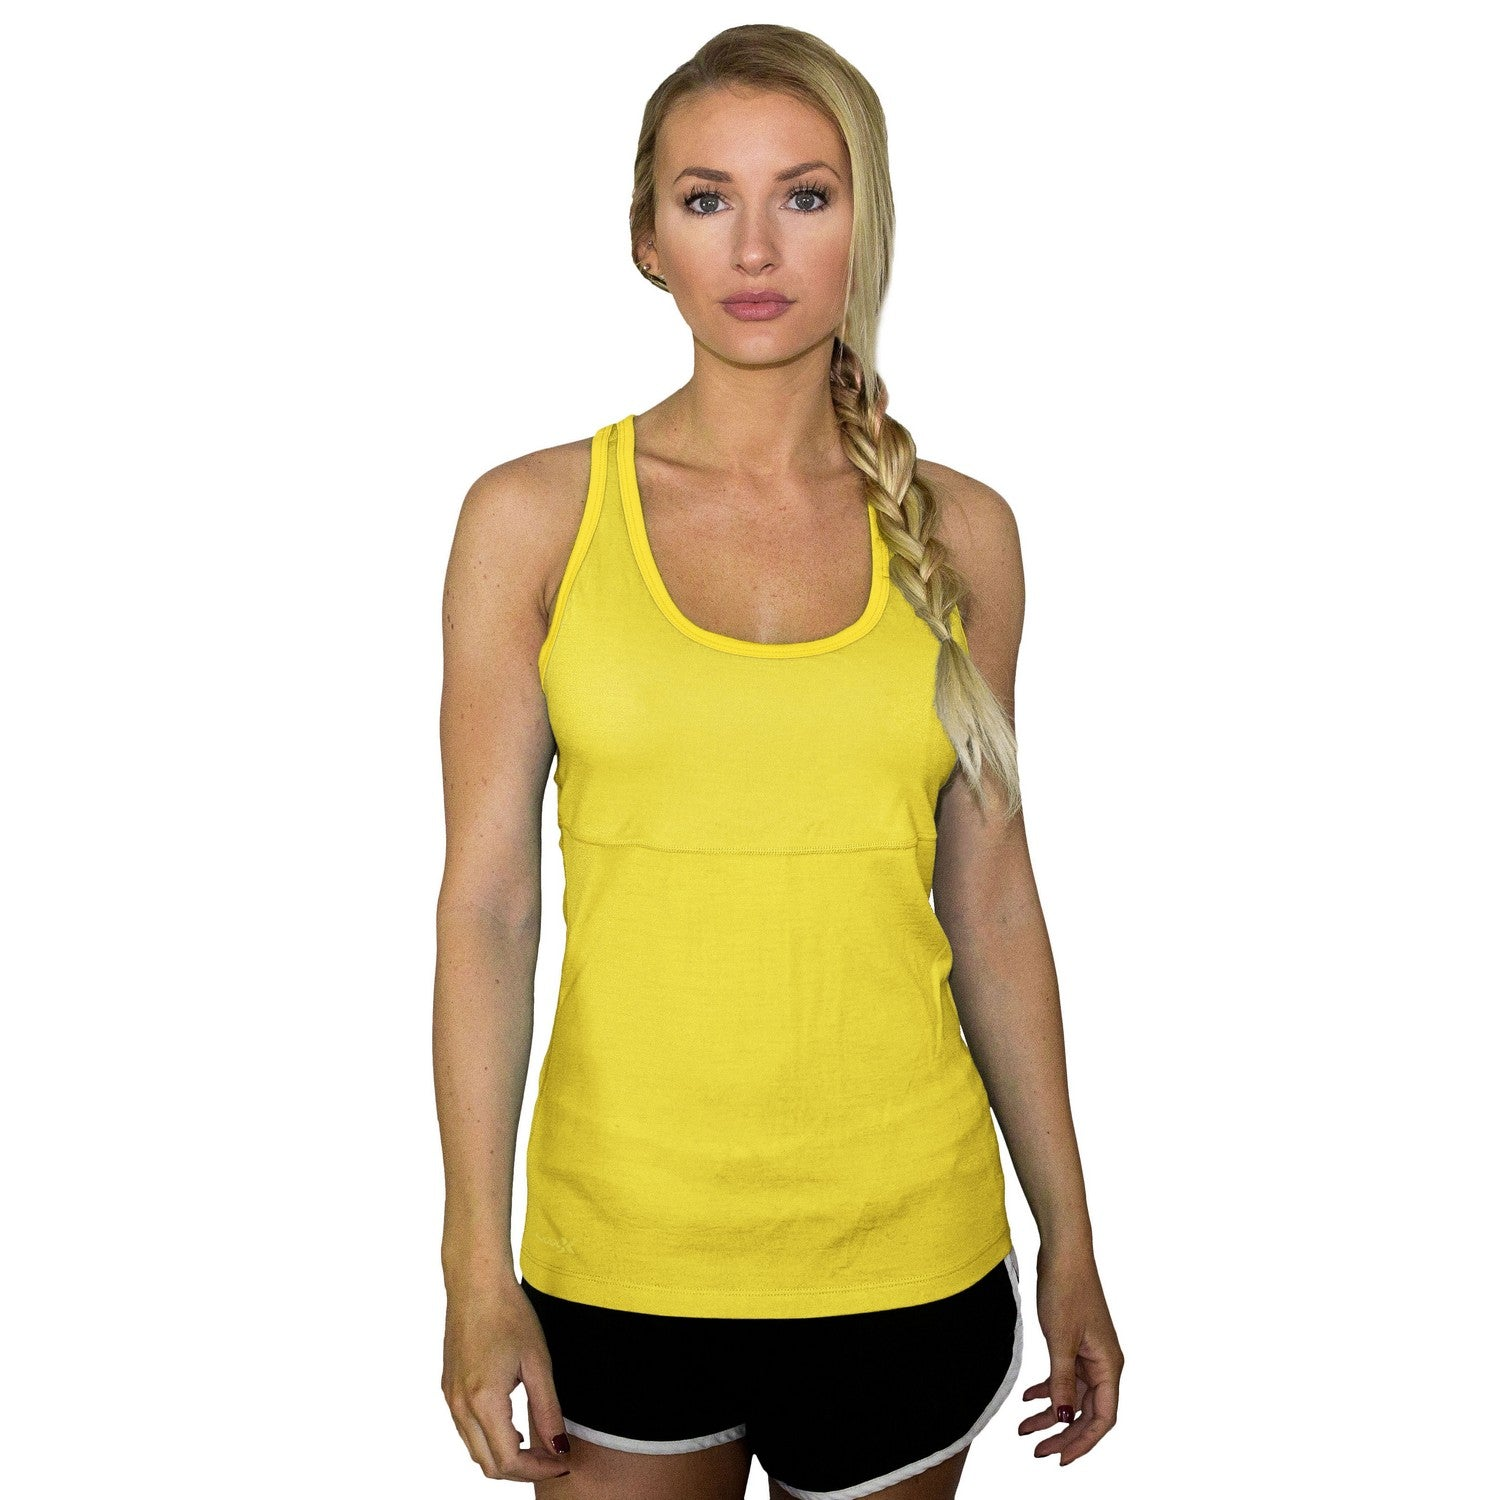 4f2cd03a41fdd Merino Wool Tank Top For Women - Moisture Wicking Tank - Free Shipping